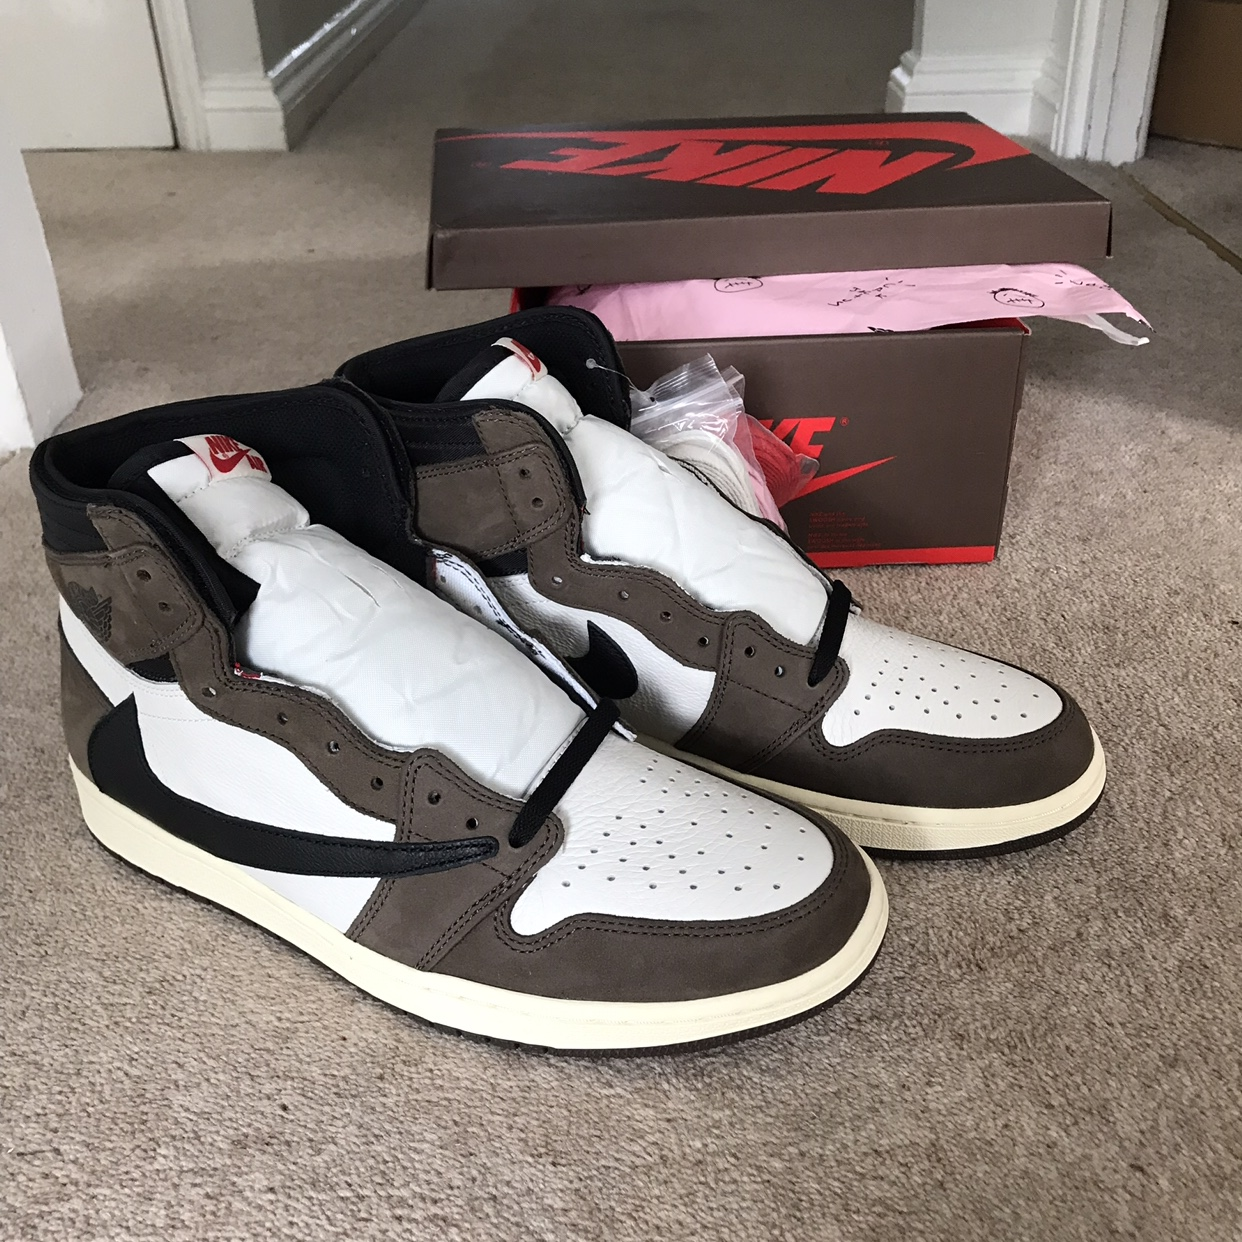 san francisco 2963f 378ad Nike air Jordan 1 travis scott Sizing: US 12, UK... - Depop